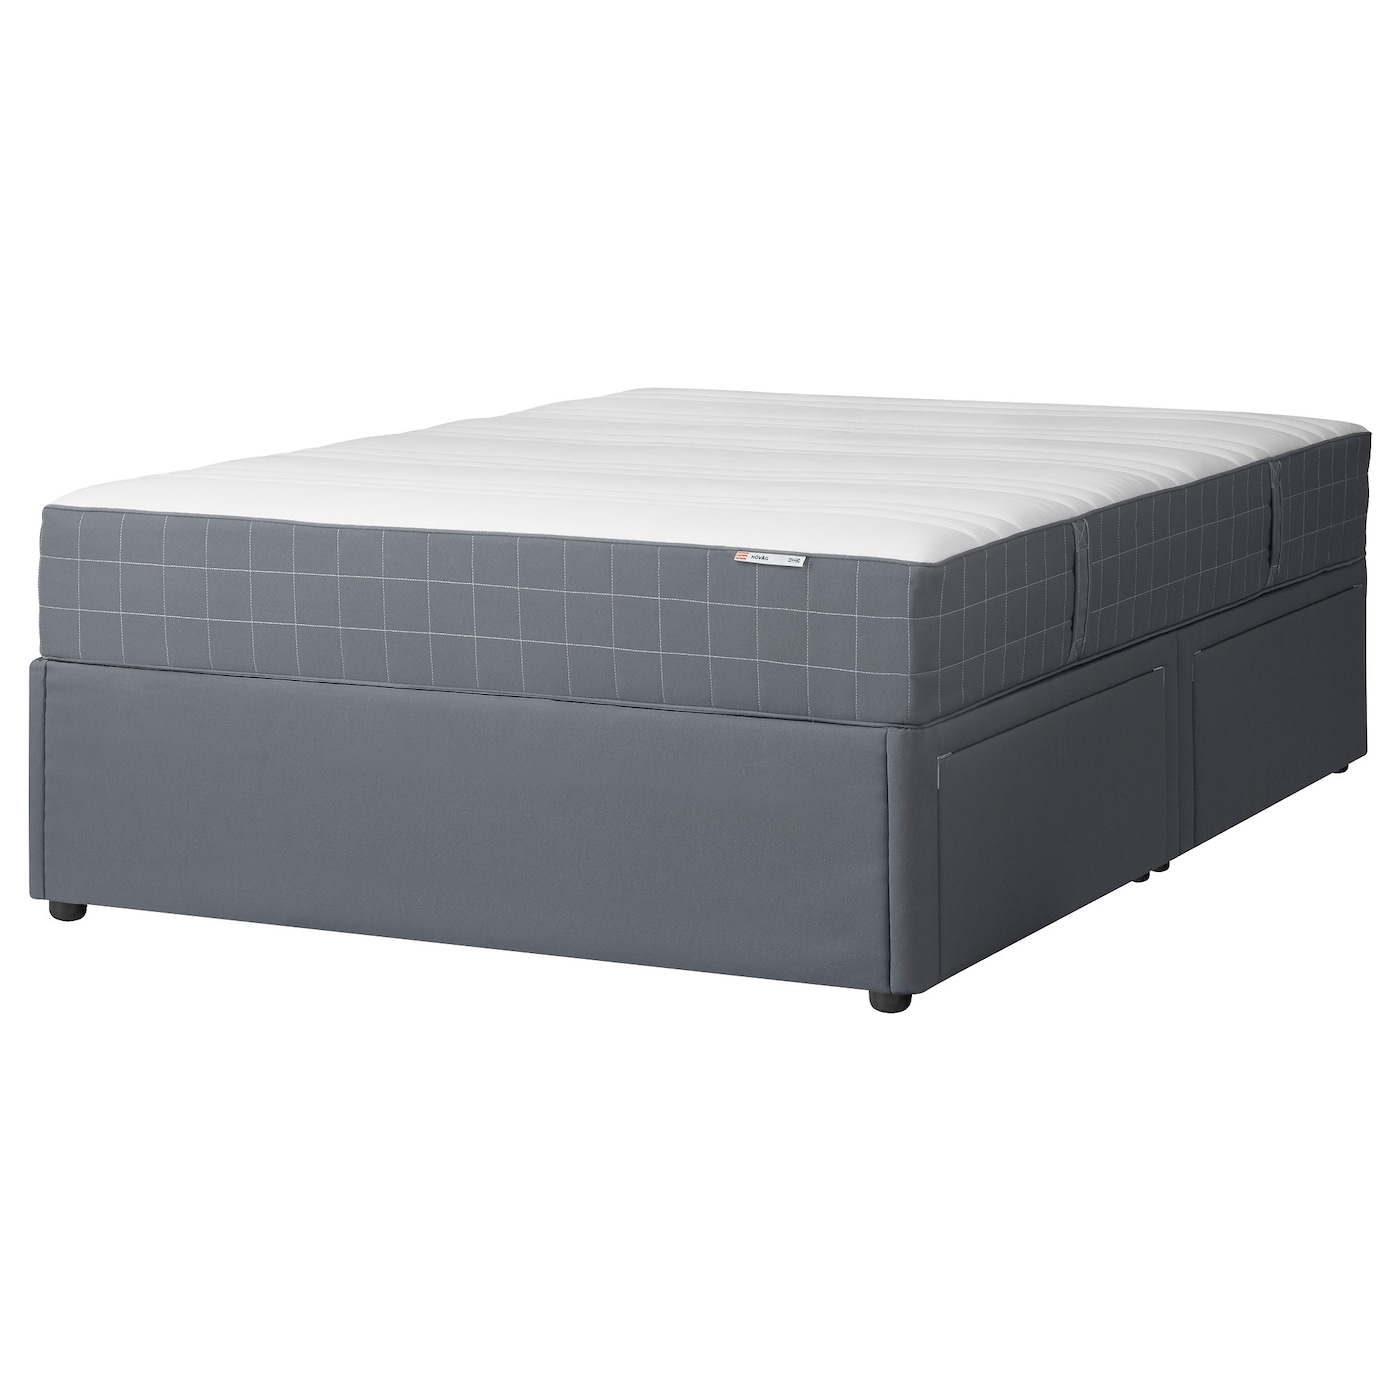 solvorn divan base with 4 drawers dark grey h v g standard